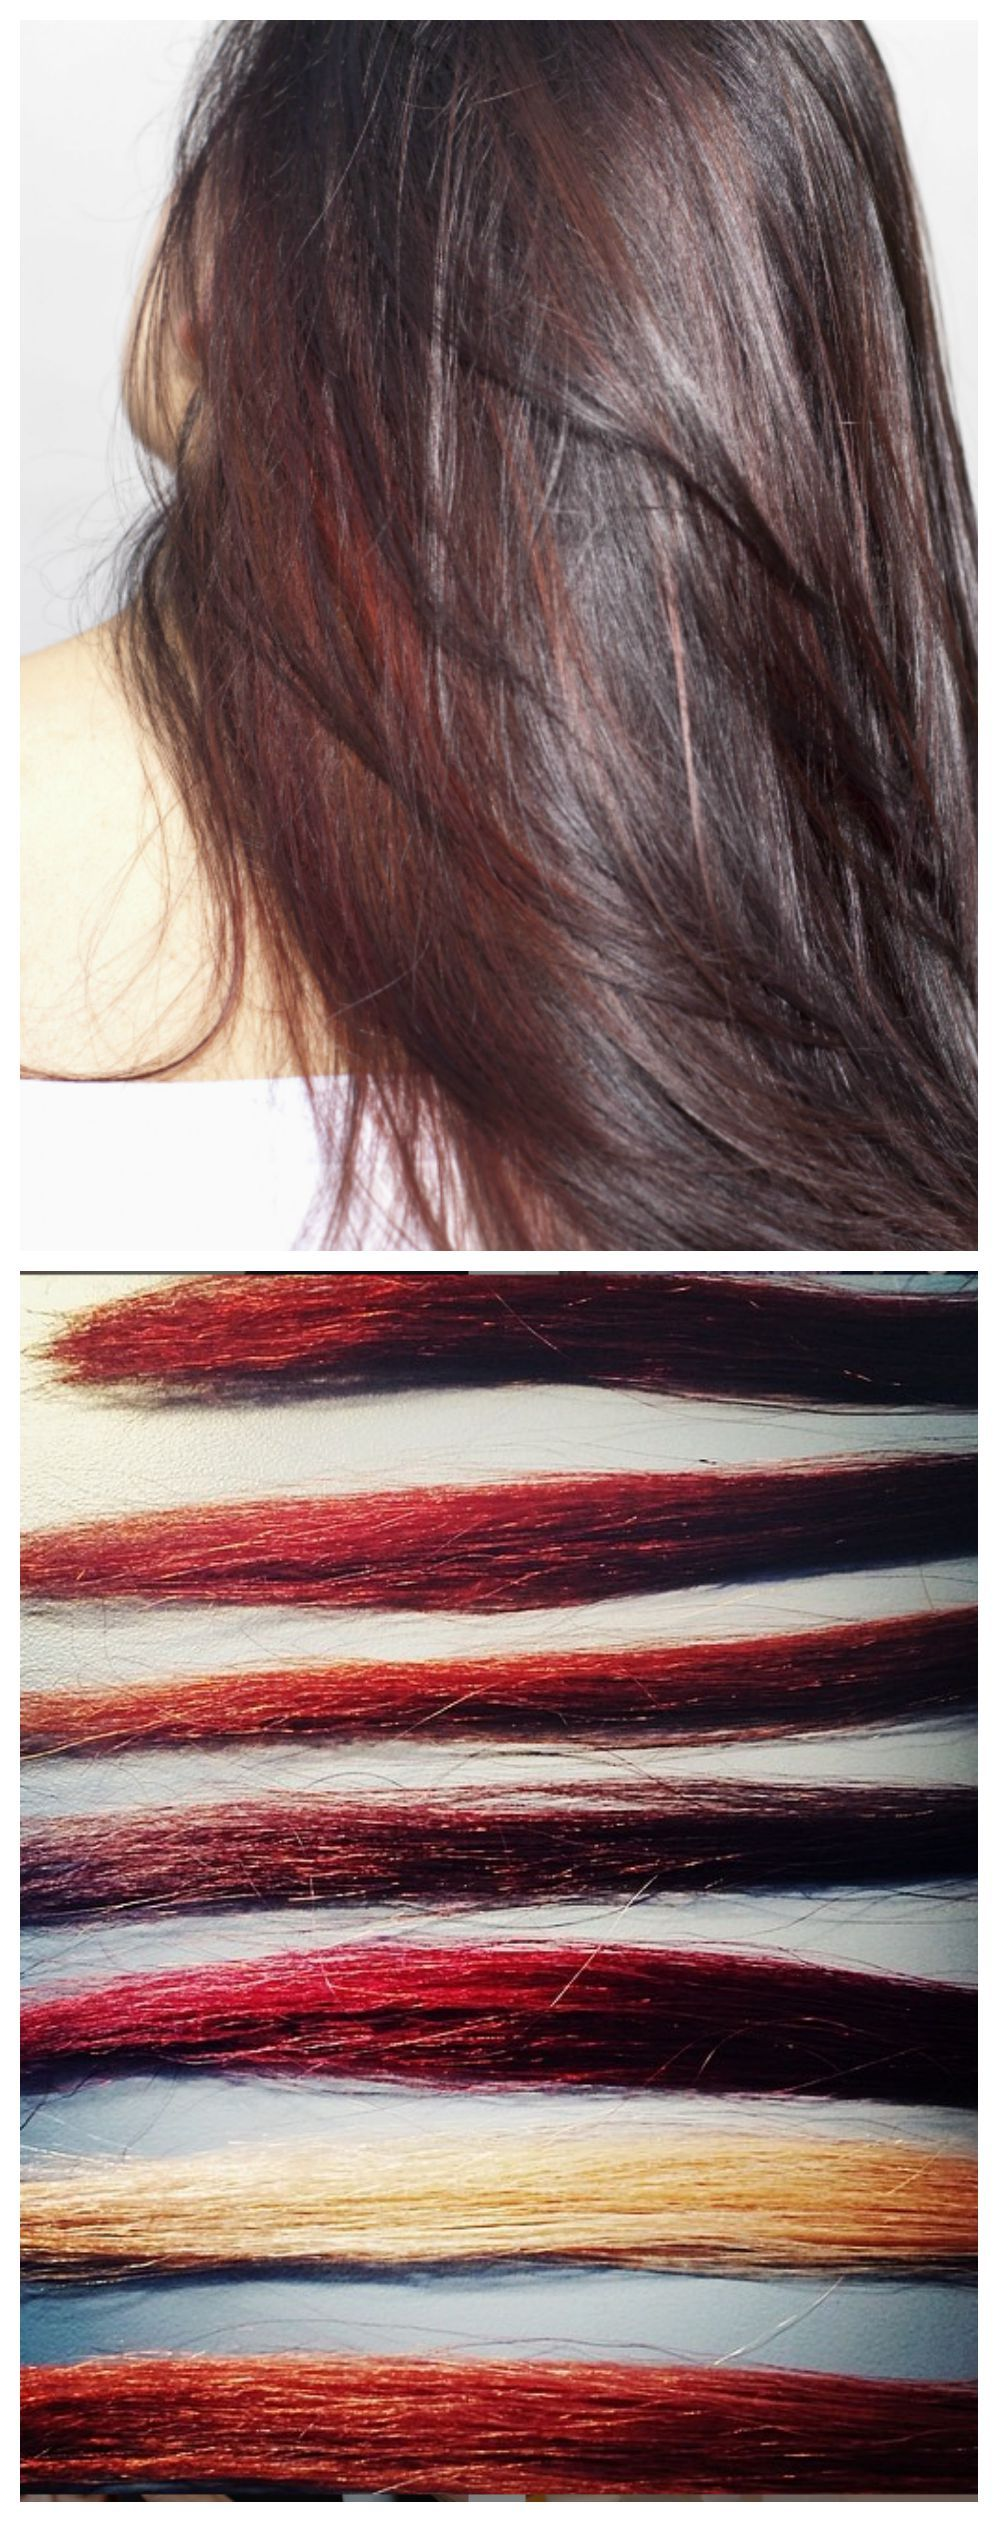 New diy hair color you should try if you color your hair at home new diy hair color you should try if you color your hair at home solutioingenieria Gallery